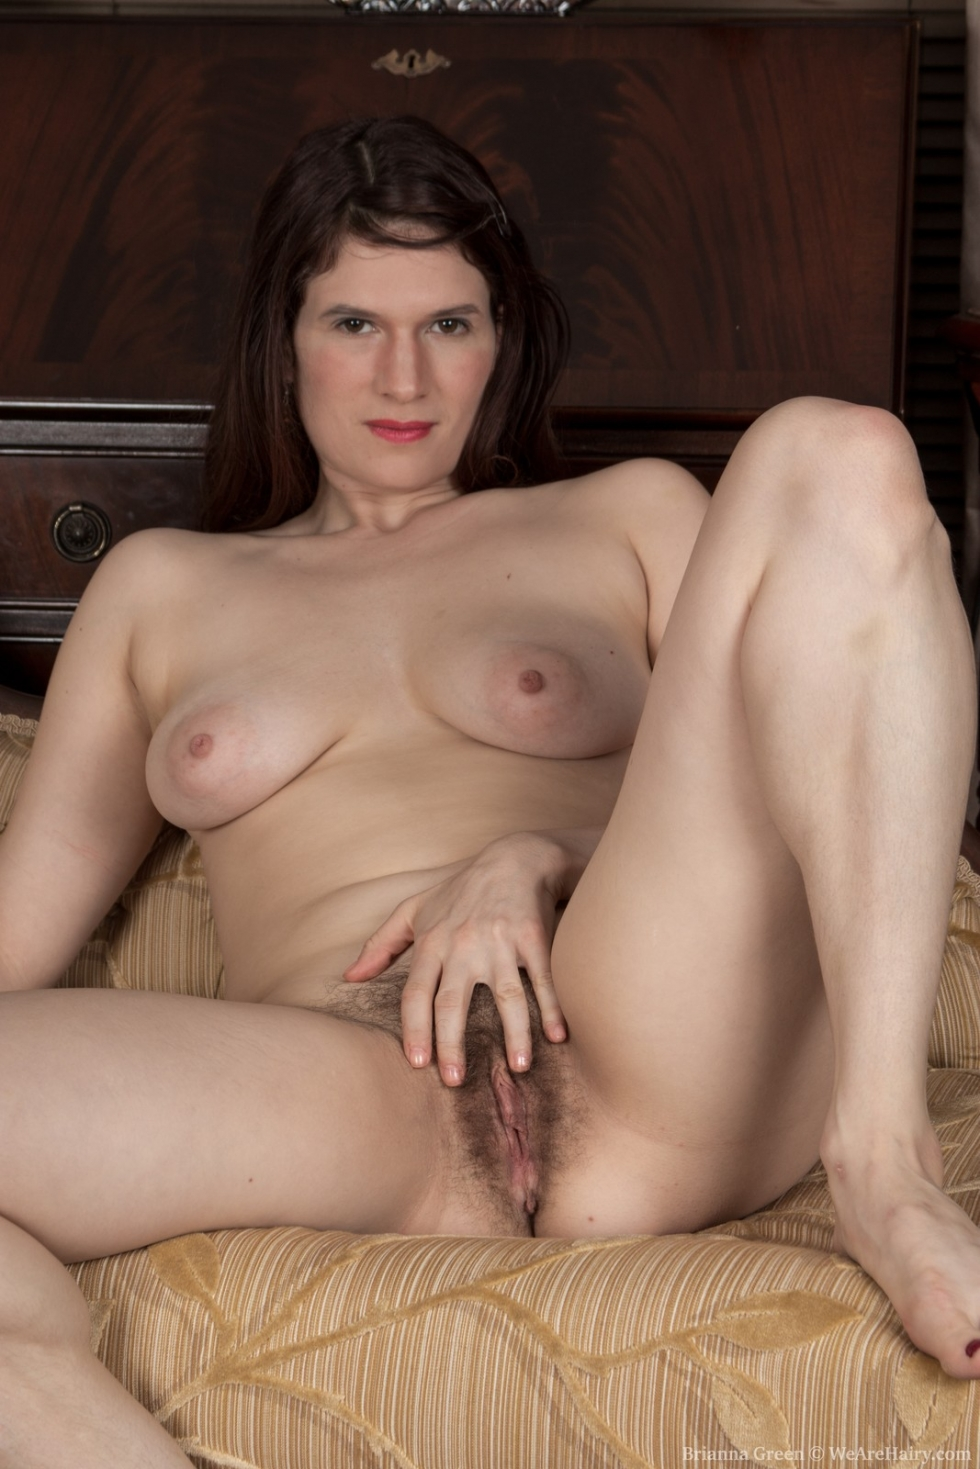 Uk milf sexy scorpio will arouse you with her luscious body - 1 part 5